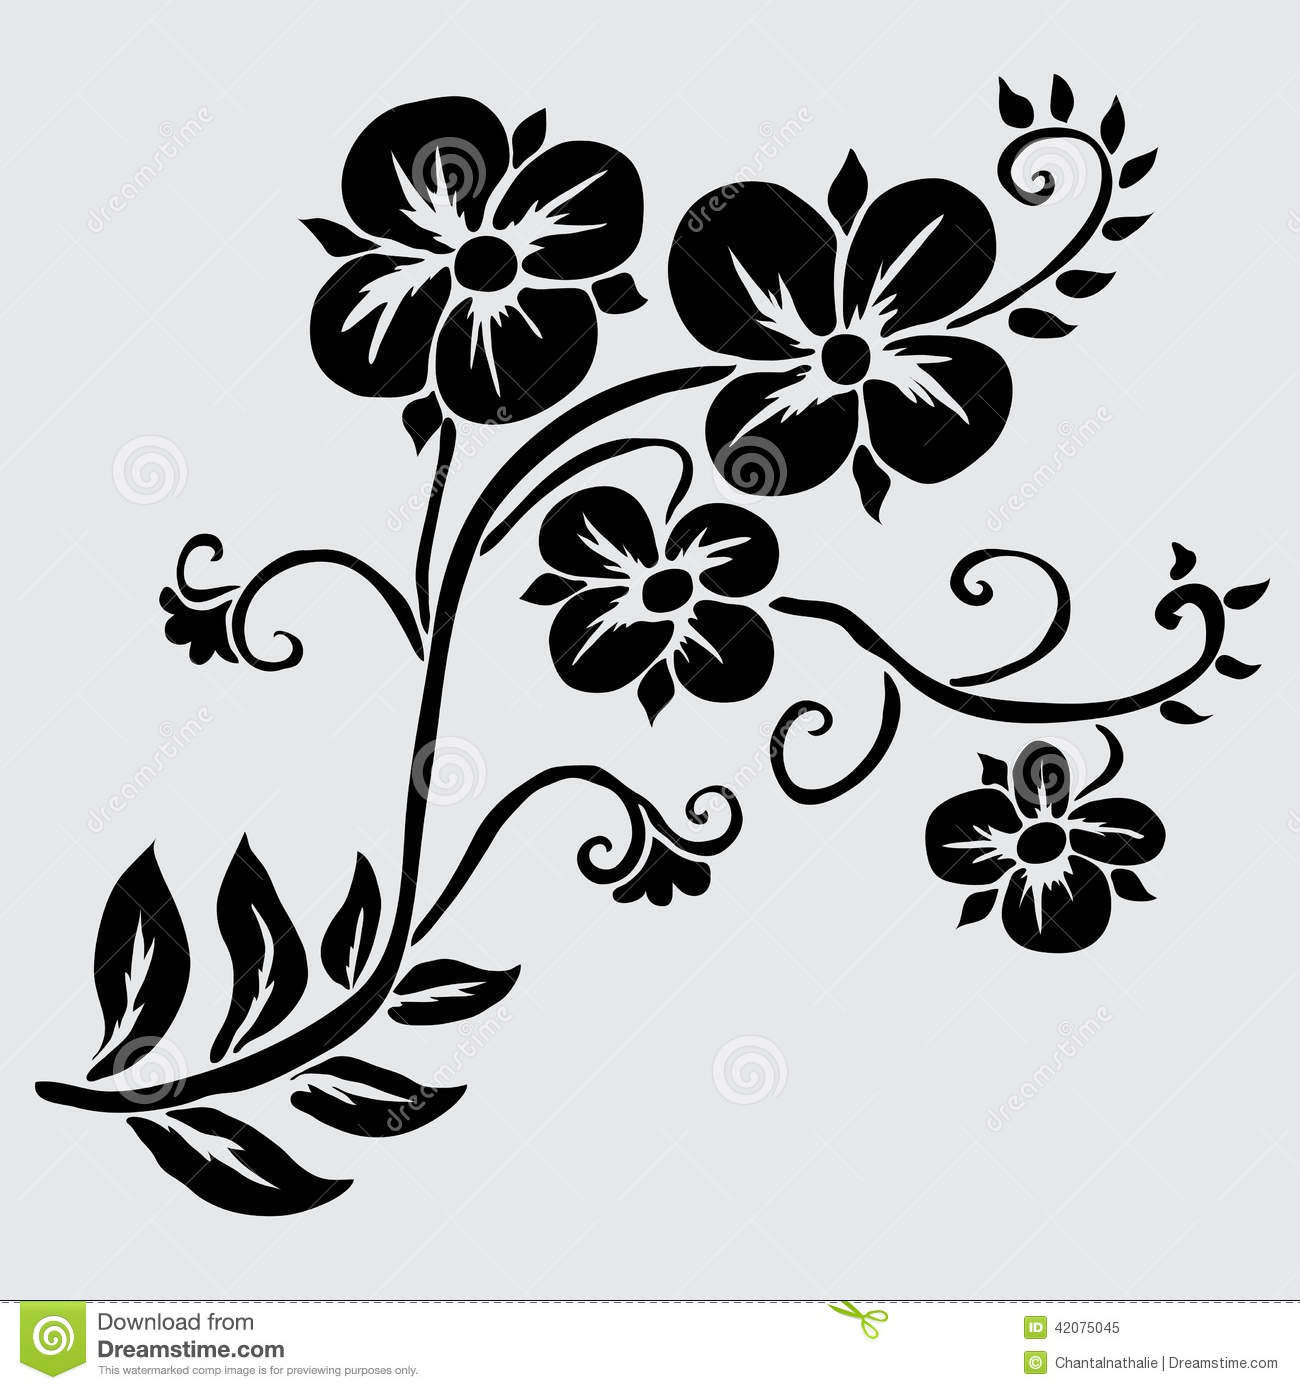 Black And White Floral Decor Poppy Flower Drawing Home  : floral decoration elegant decorative flowers design element branch vintage wedding invitations greeting cards banners 42075045 from www.pidgeonenglish.com size 1300 x 1390 jpeg 135kB